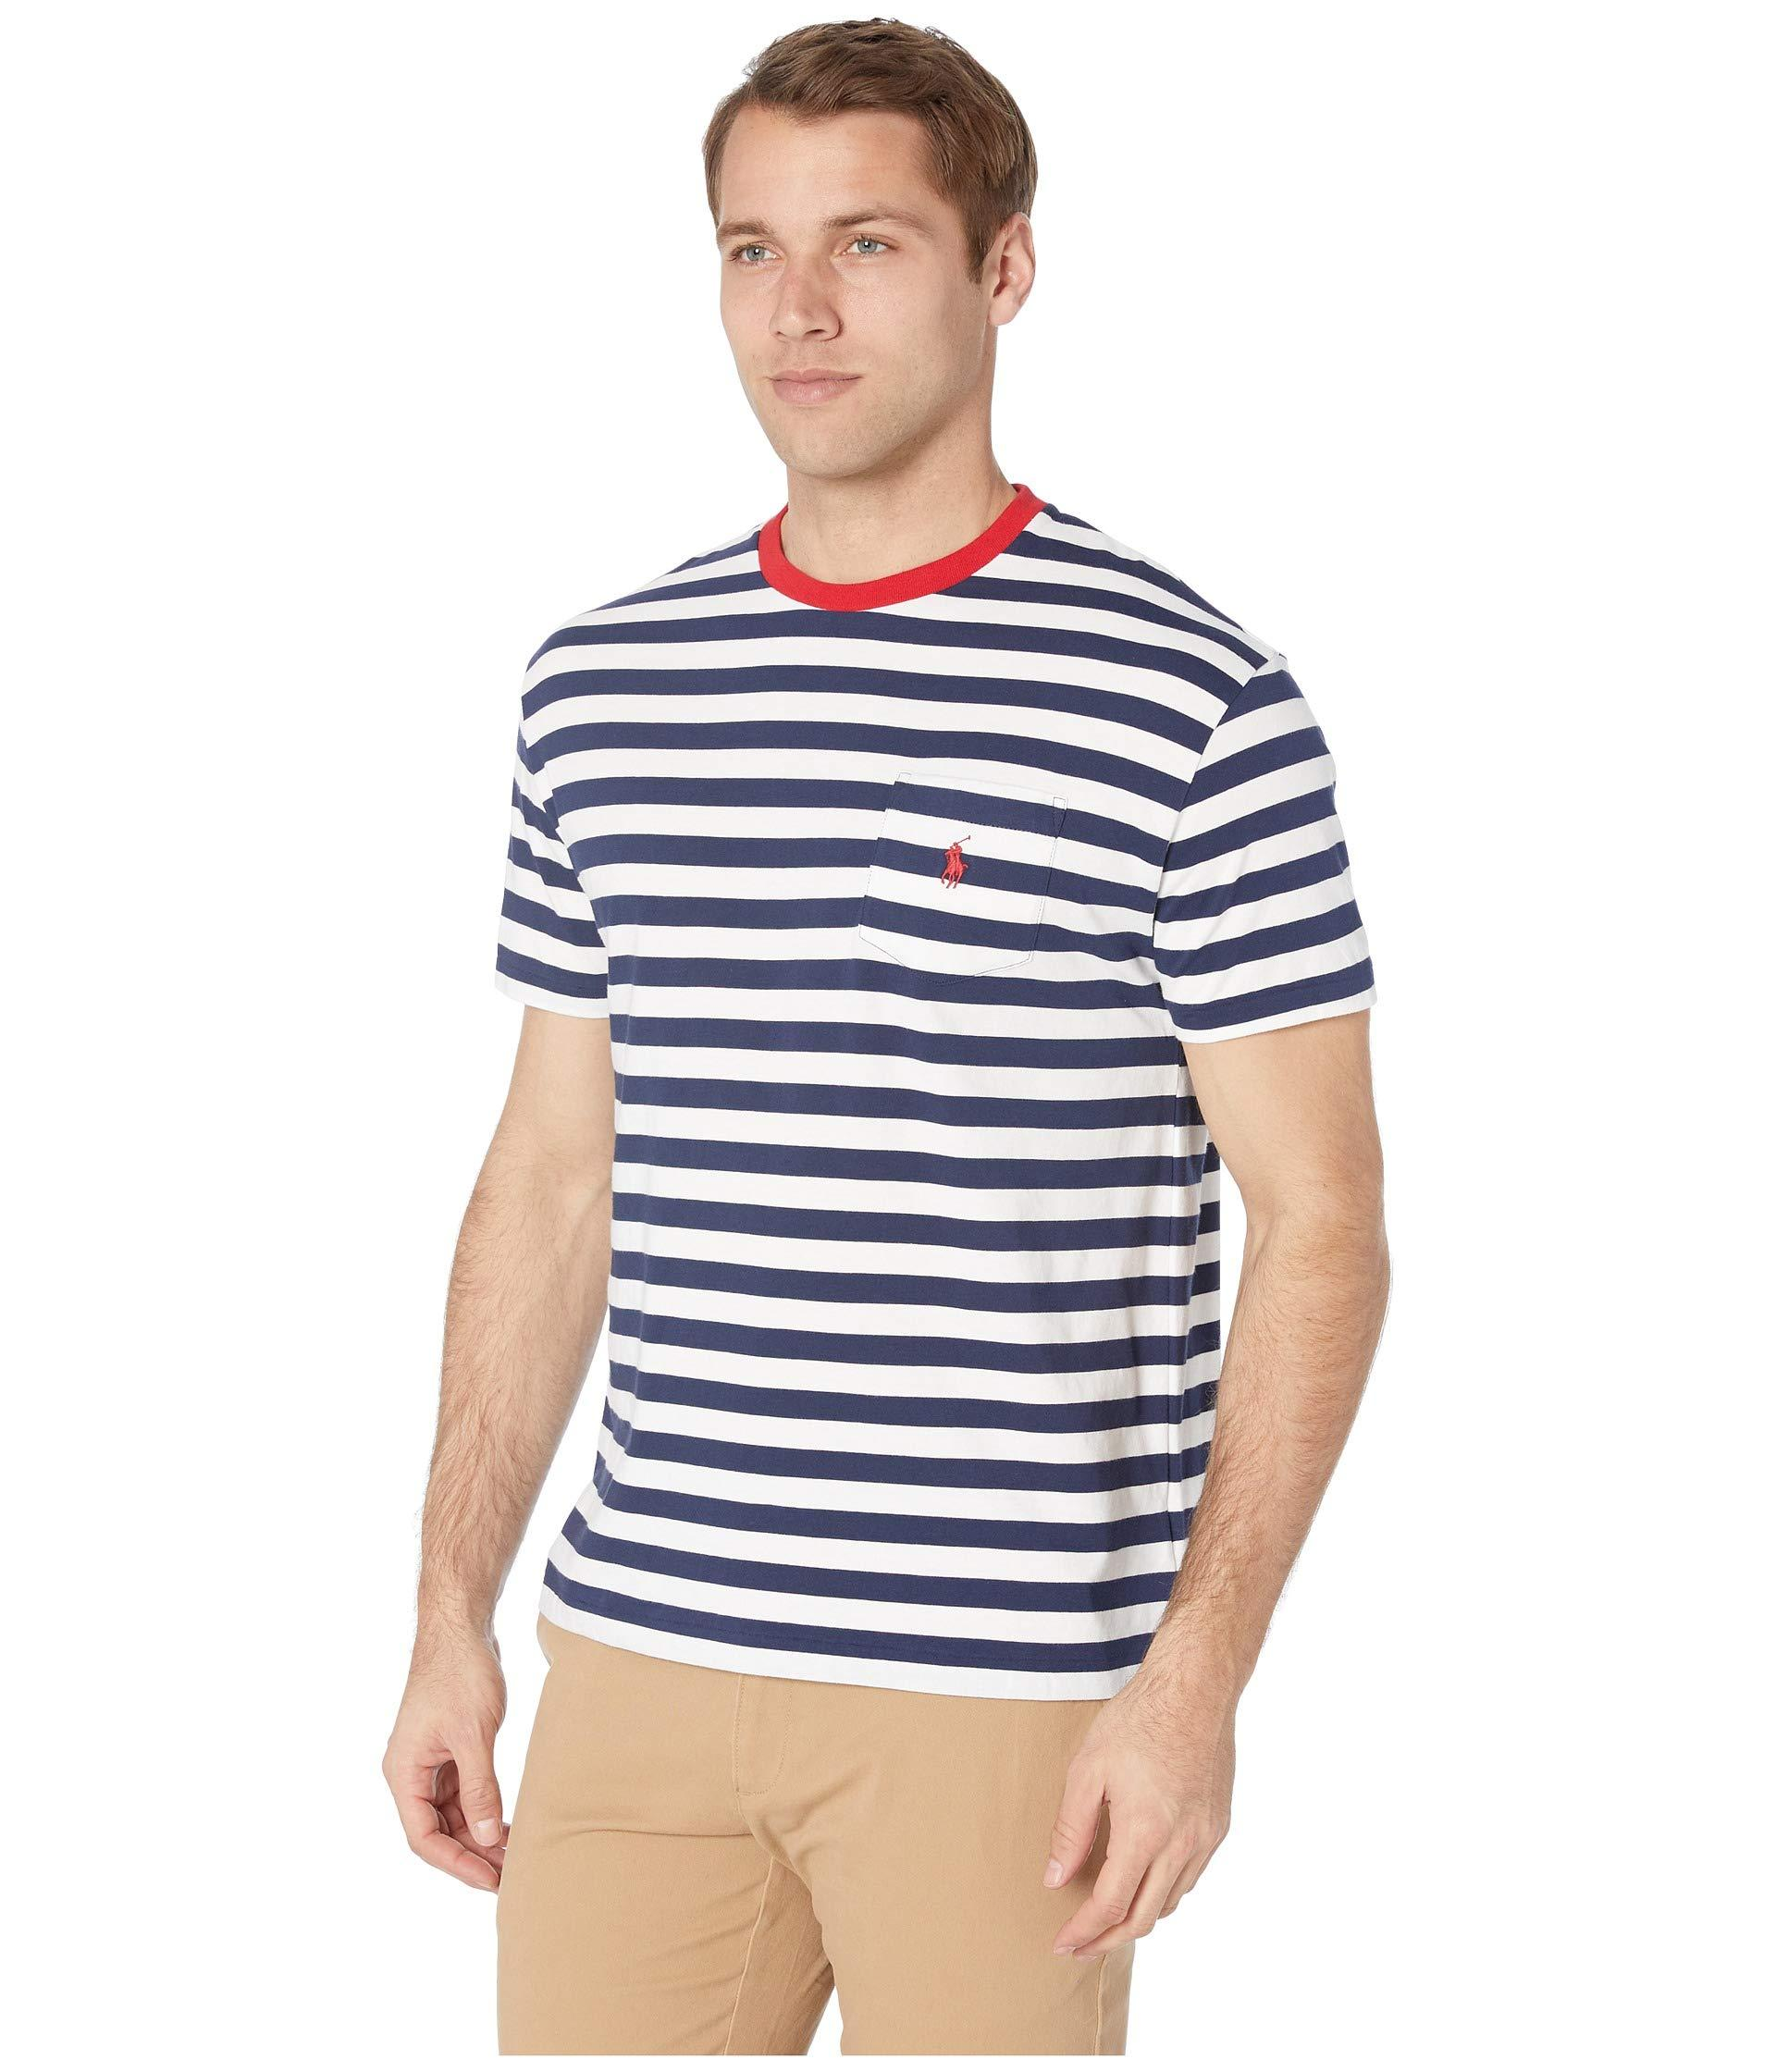 b15247ba59bc Lyst - Polo Ralph Lauren Short Sleeve Classic Fit Pocket Tee (cruise  Red white) Men s T Shirt in Blue for Men